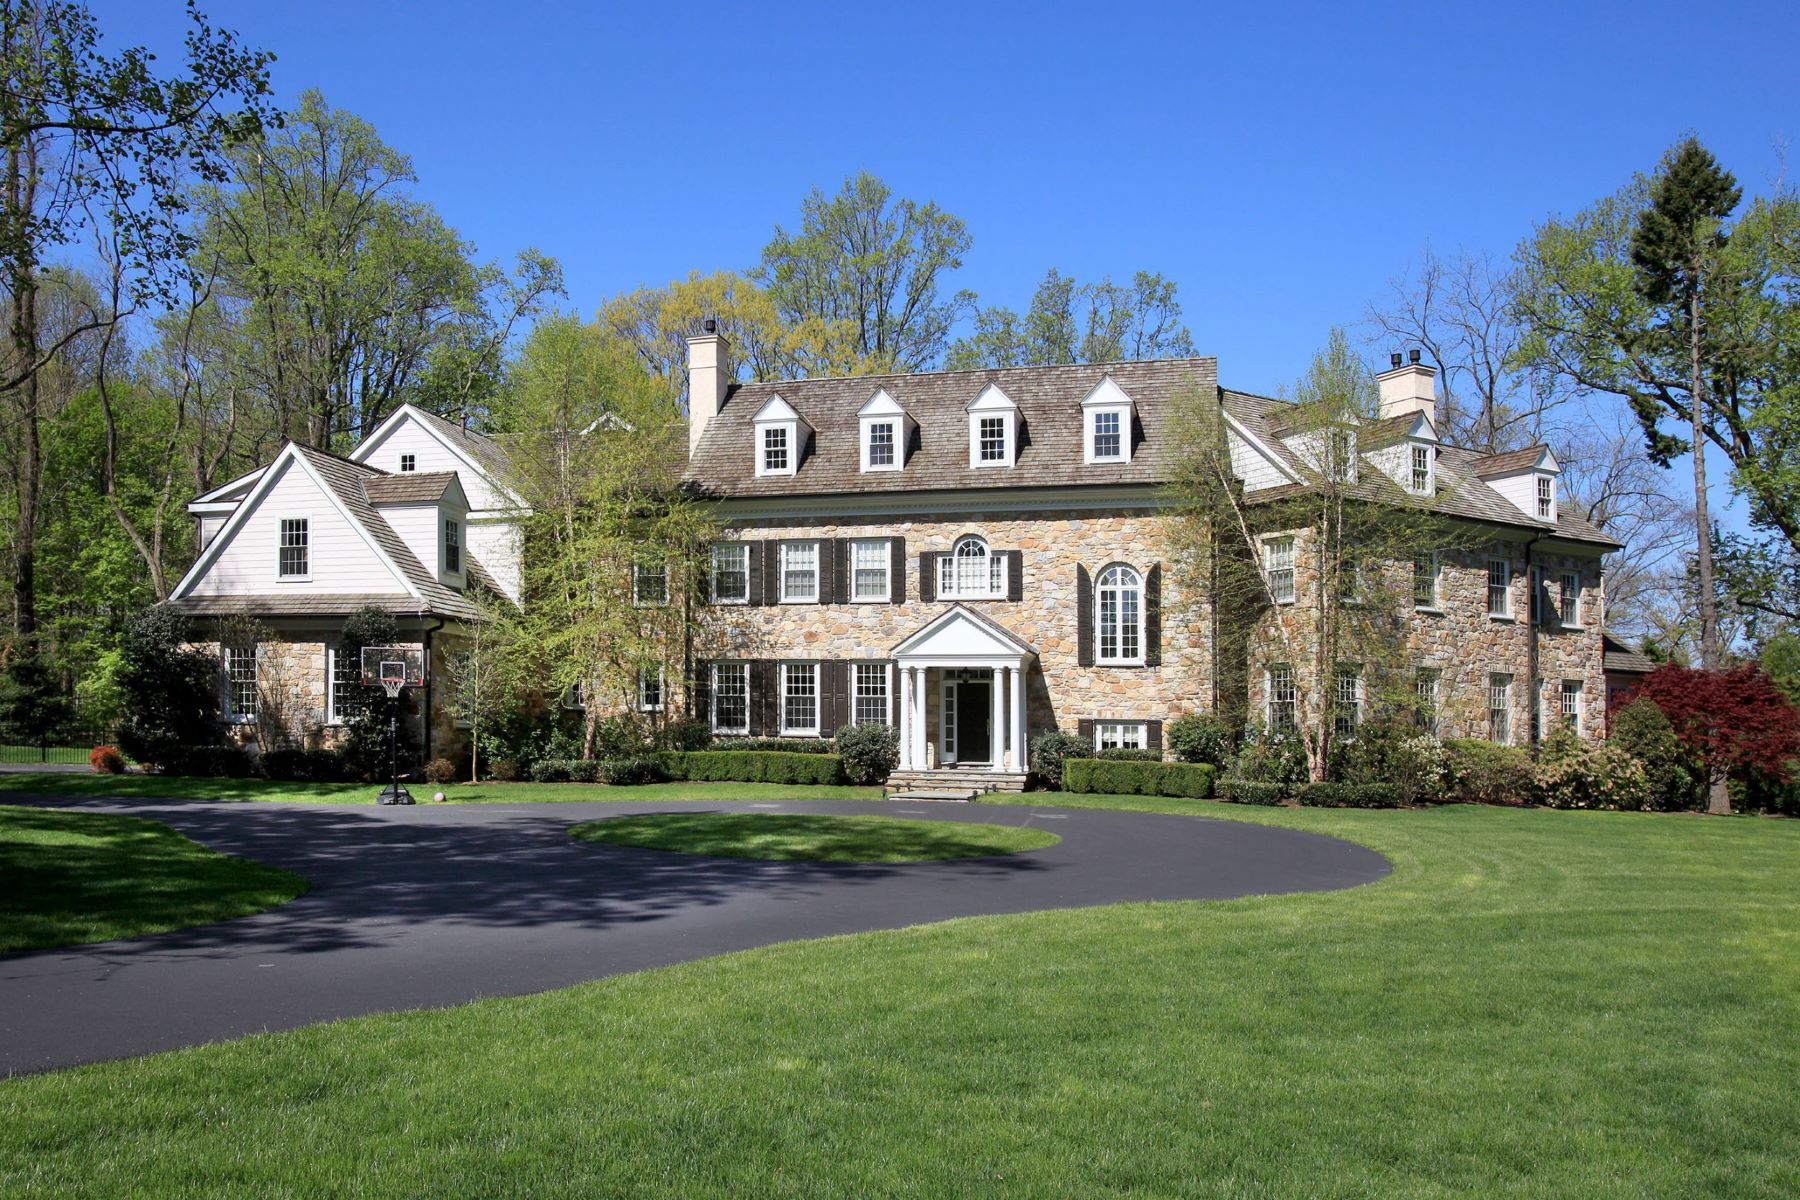 Maison unifamiliale pour l Vente à Incredible Devon Estate 305 BEAUMONT RD Devon, Pennsylvanie 19333 États-Unis